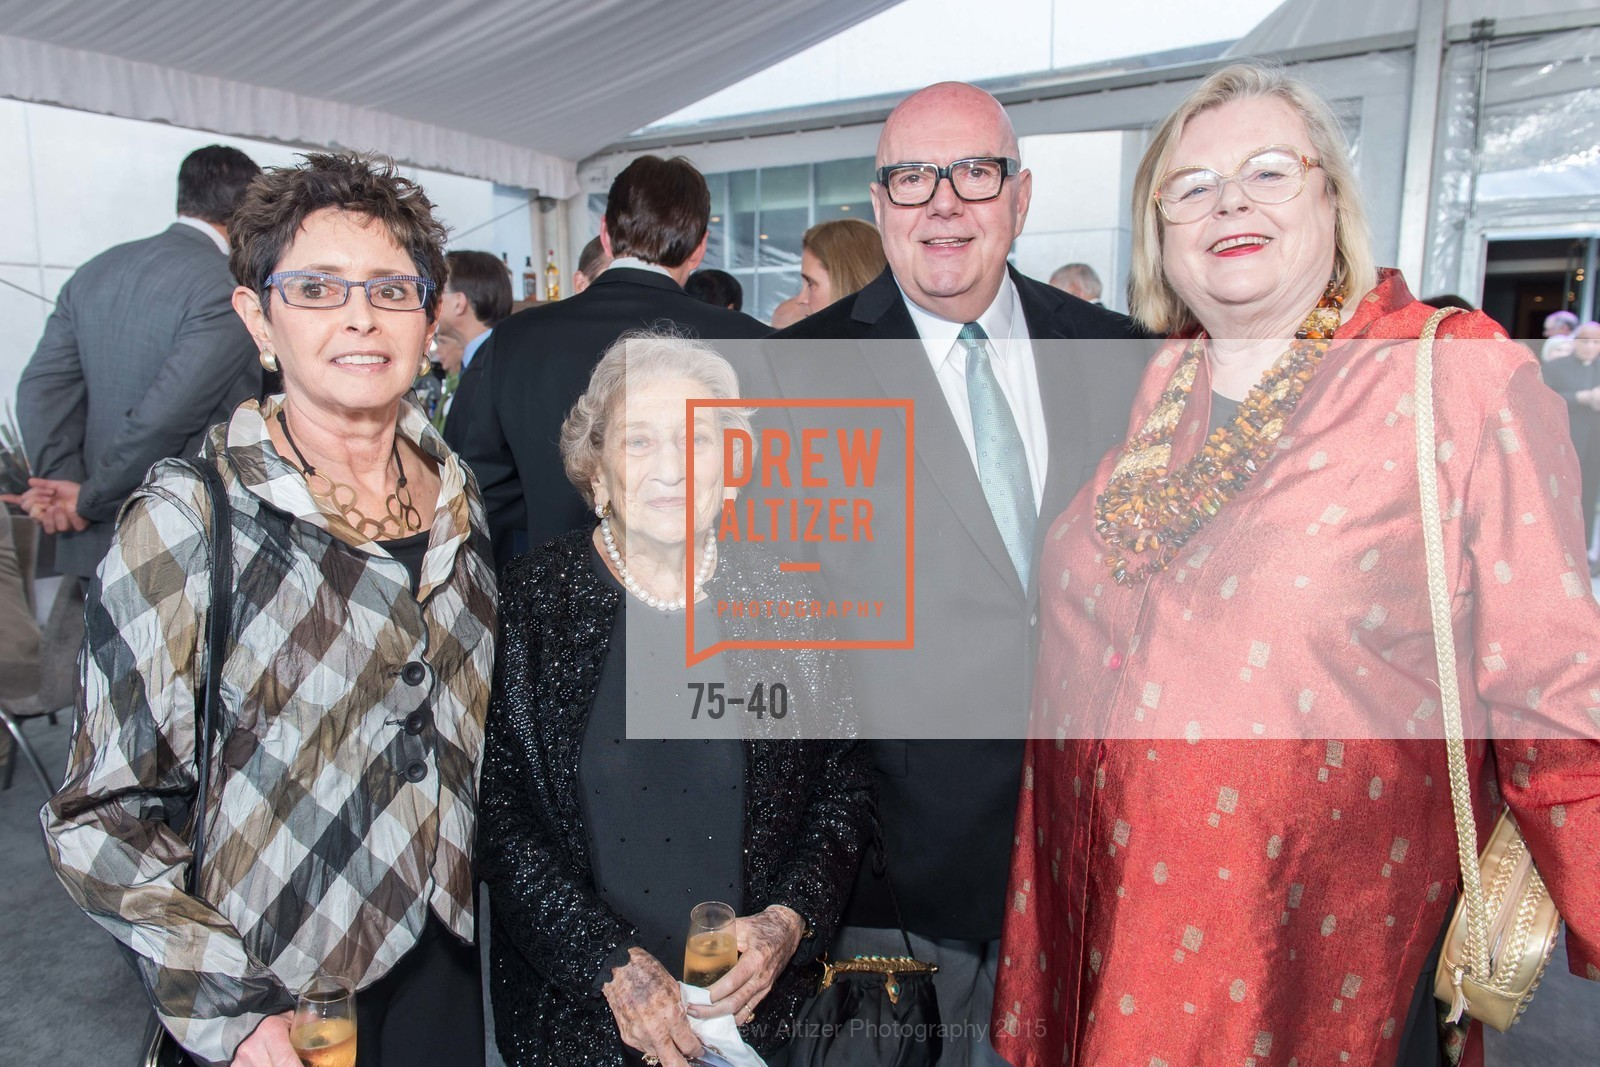 Jerilyn Gelt, Rita Semel, Robert Atkins, Donna Casey,  Catholic Charities Loaves & Fishes, St. Regis, April 18th, 2015,Drew Altizer, Drew Altizer Photography, full-service agency, private events, San Francisco photographer, photographer california